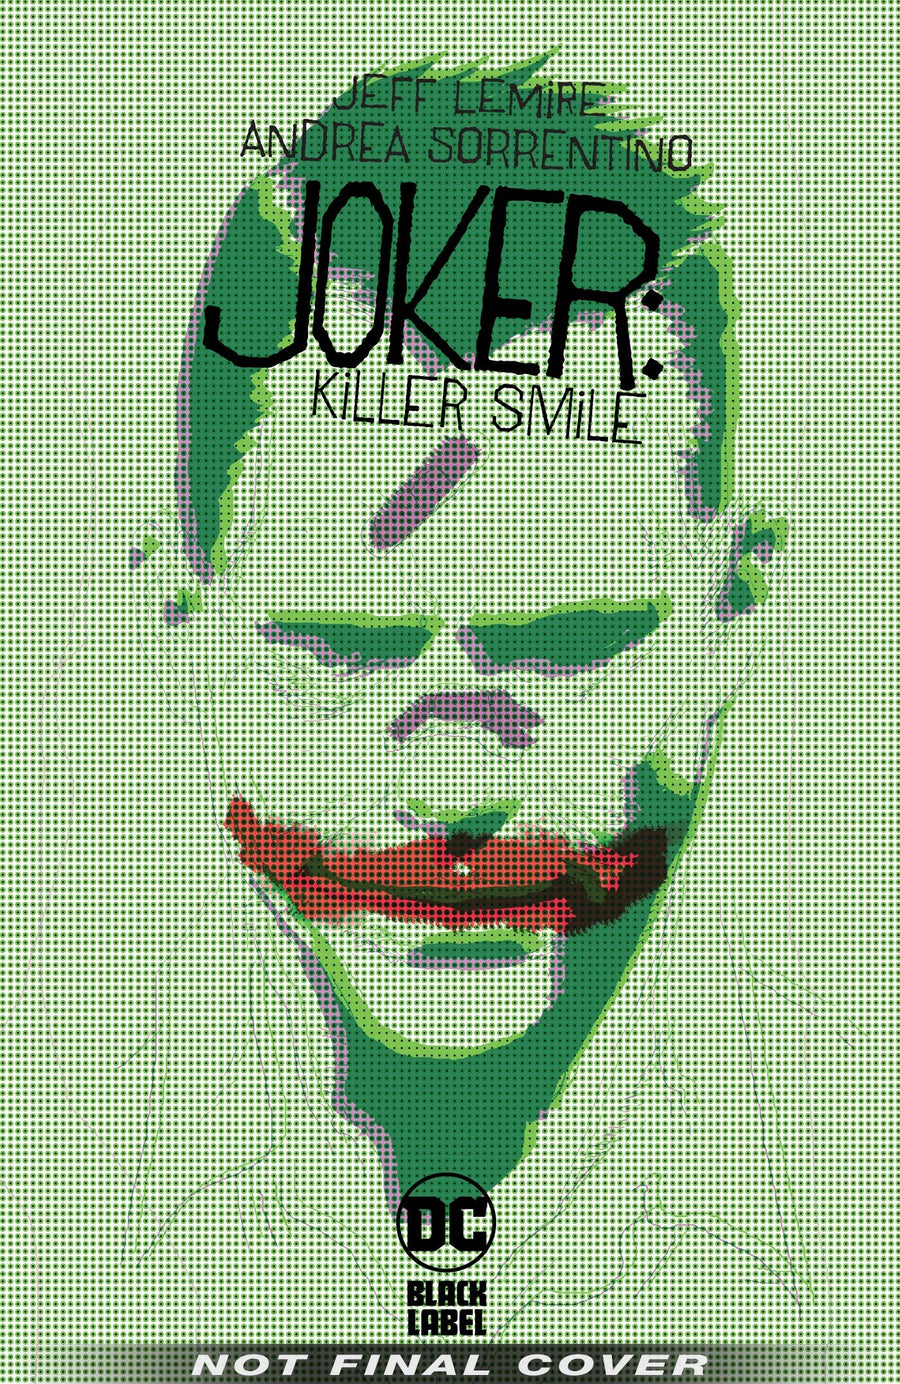 Joker Killer Smile Hardcover